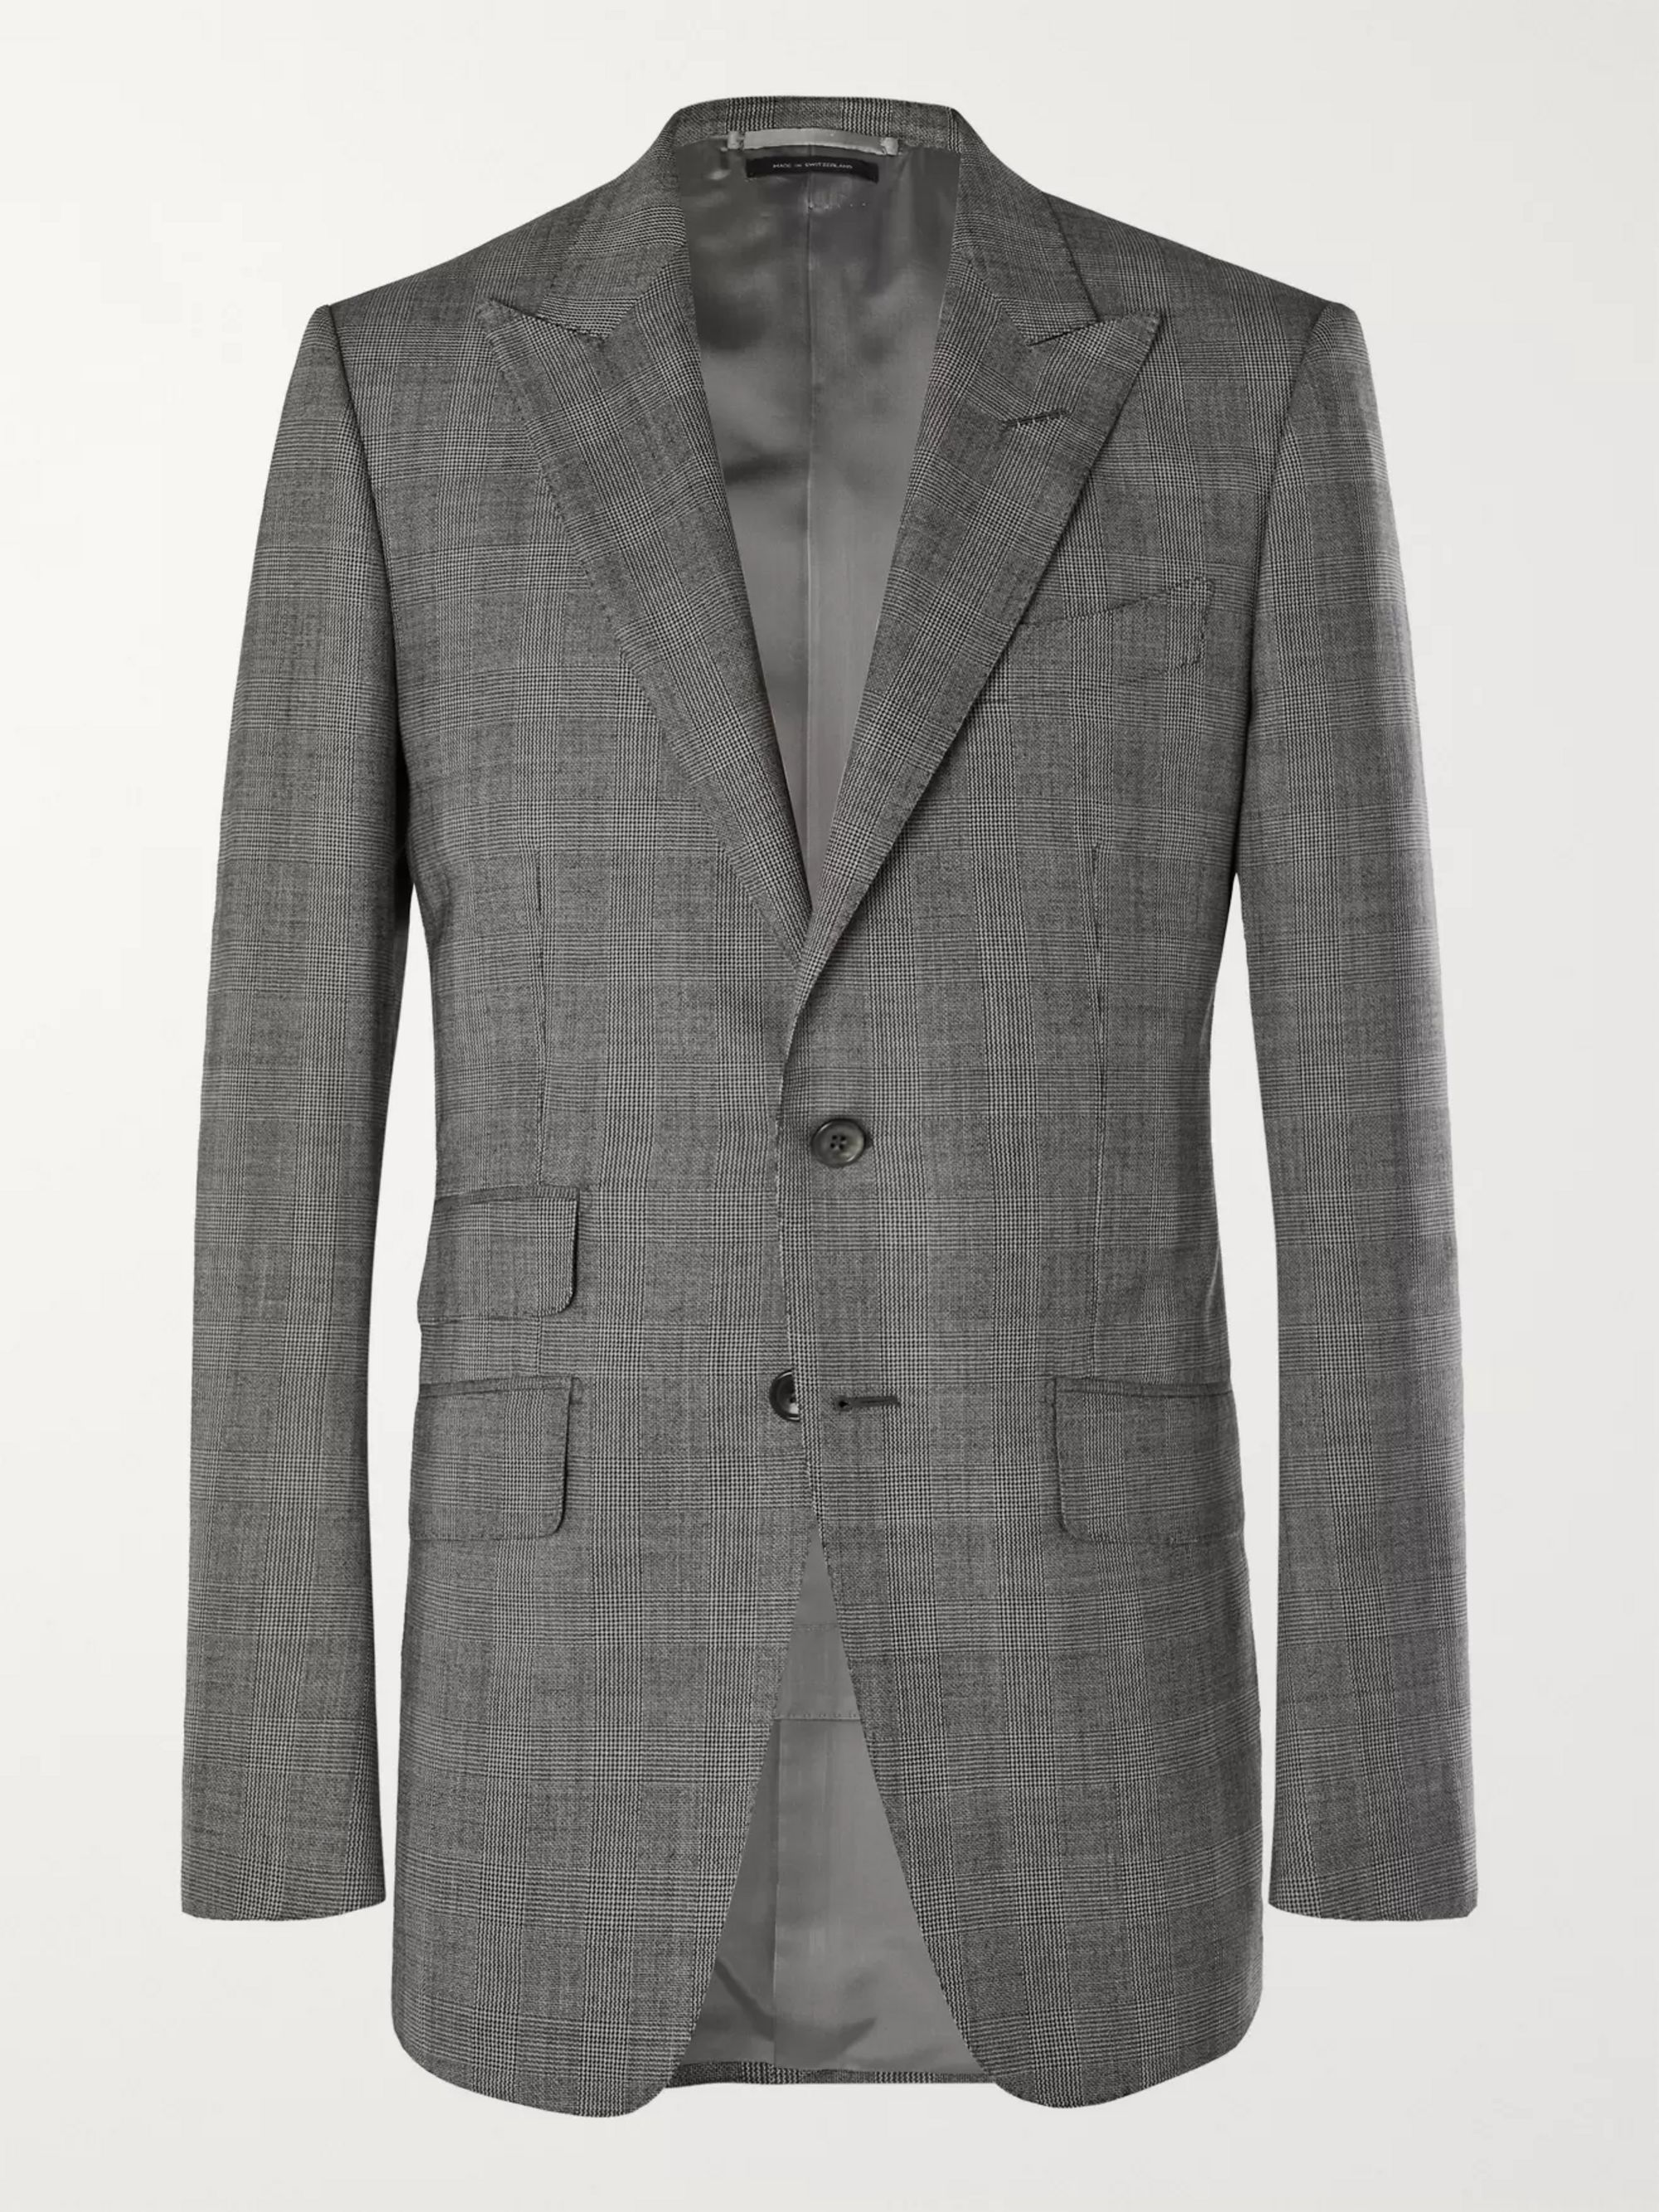 TOM FORD Grey O'Connor Slim-Fit Prince of Wales Checked Wool Suit Jacket